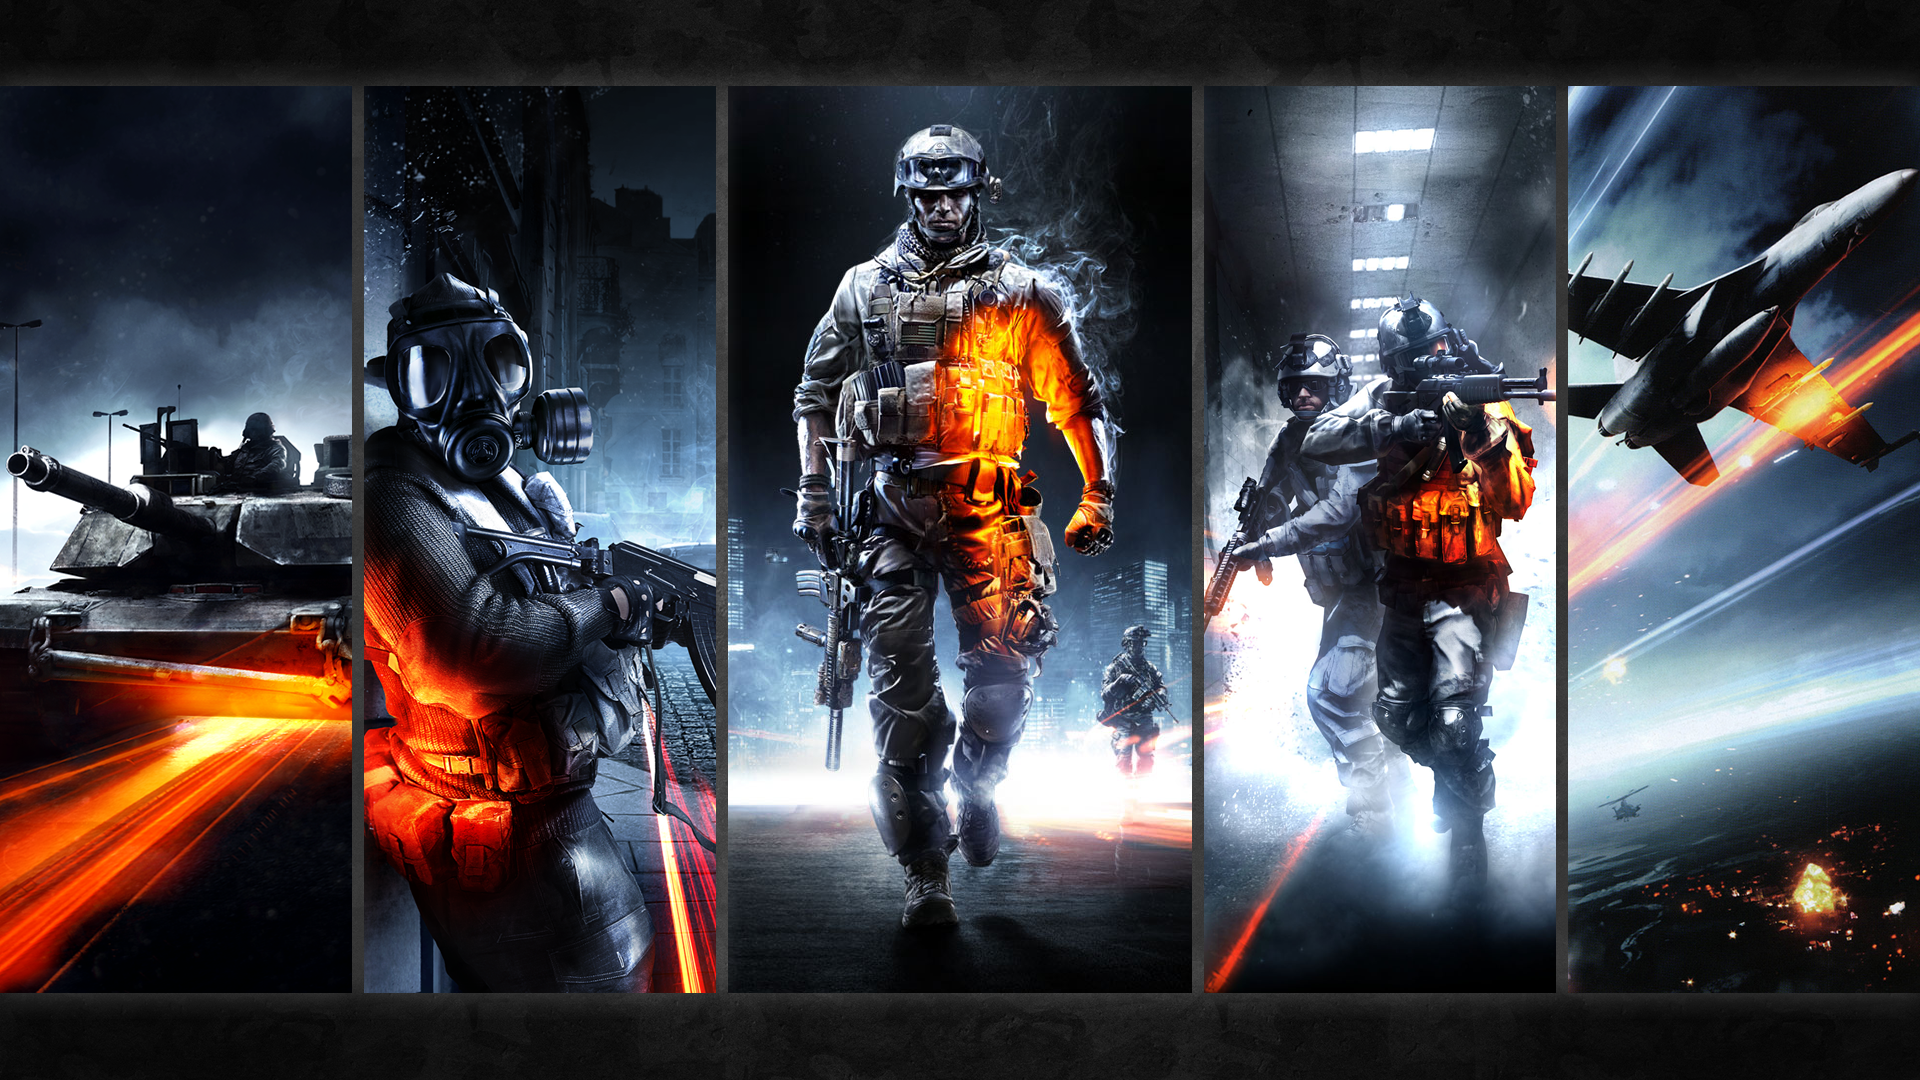 191 battlefield 3 hd wallpapers | background images - wallpaper abyss